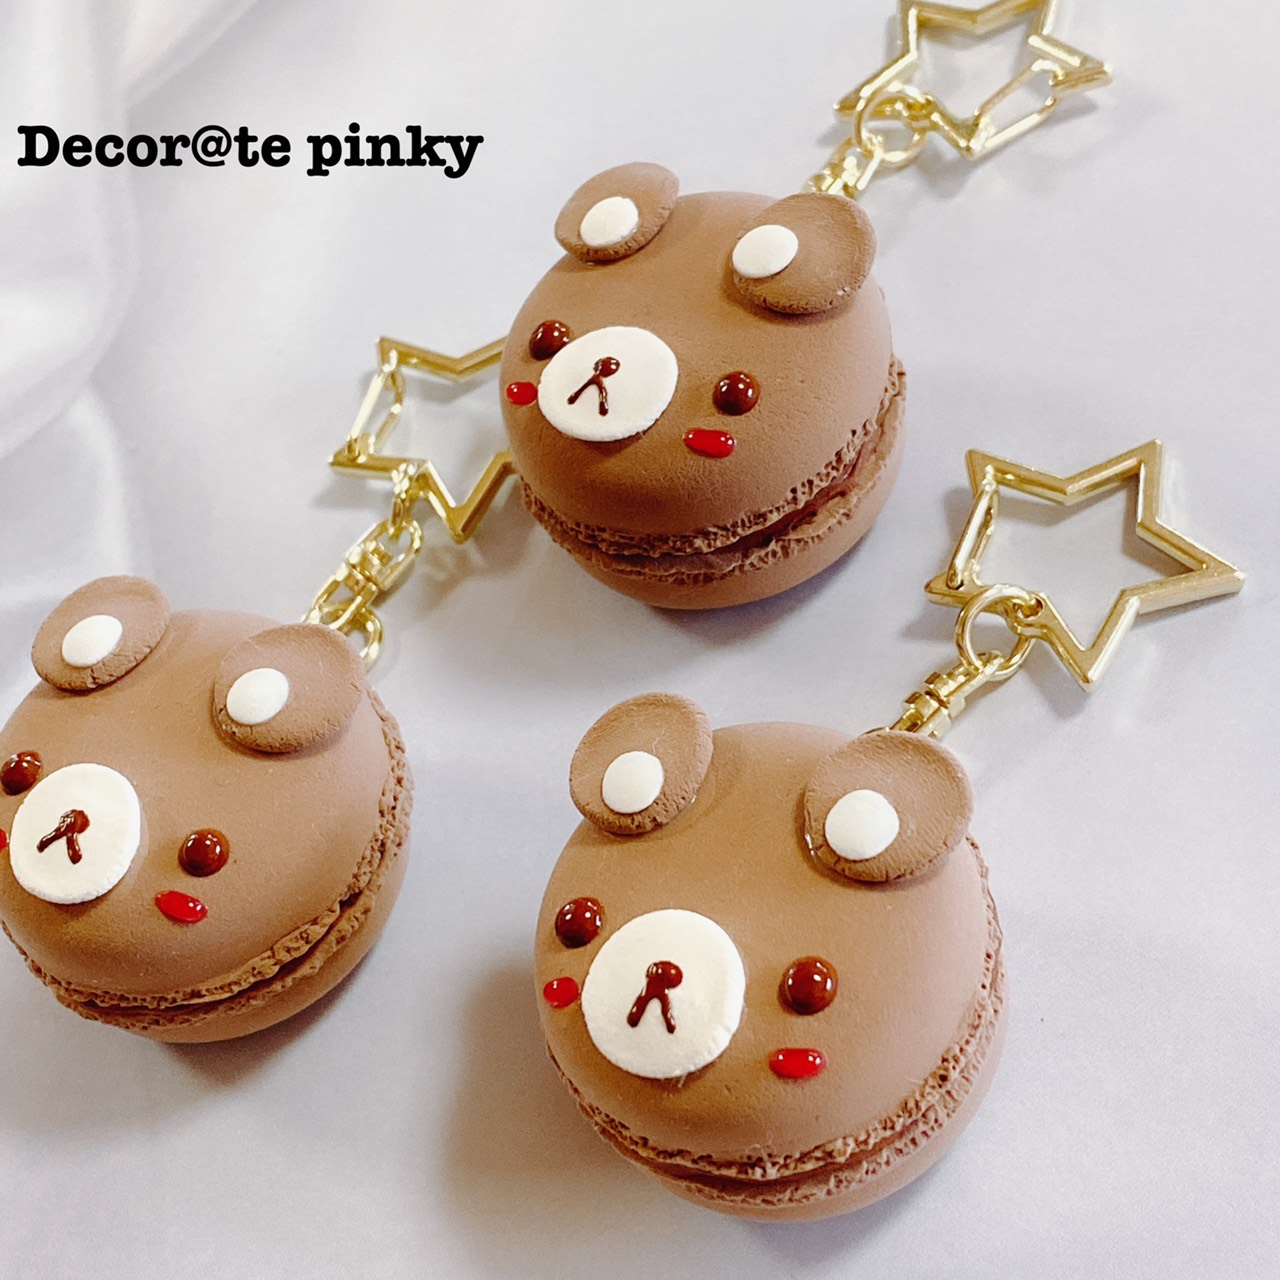 Decorate Pinky